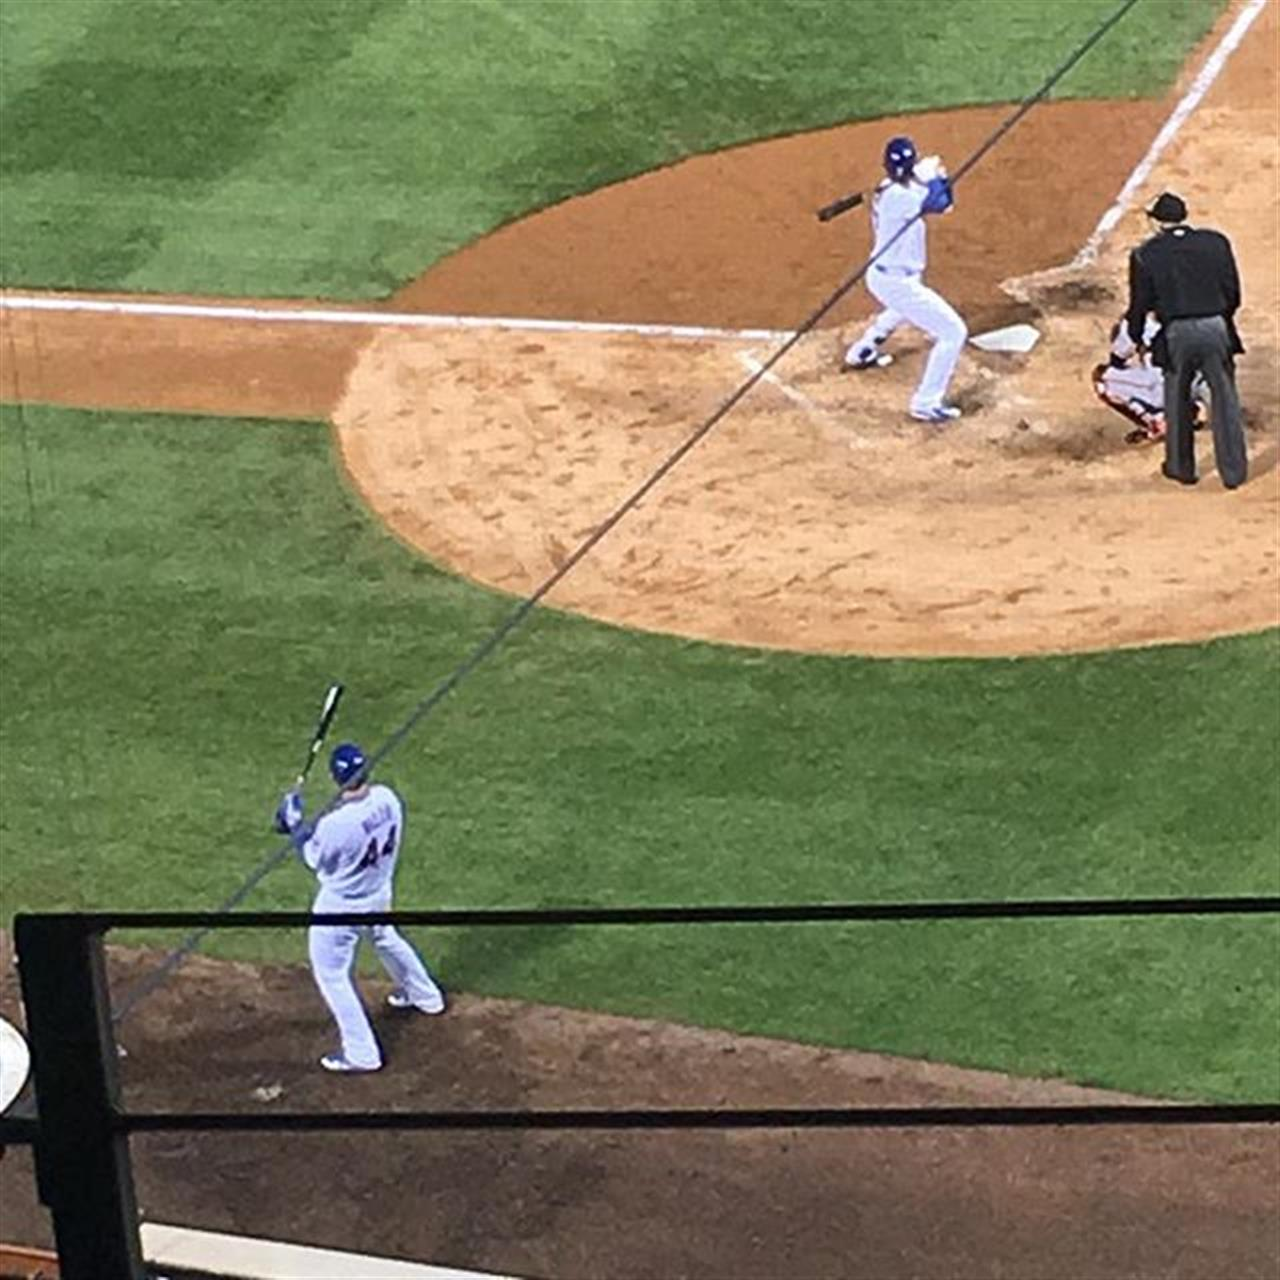 Chicago's most iconic bff duo - Kris Bryant and Anthony Rizzo. #chicagocubs #chicago #wrigleyfield #leadingrelocal